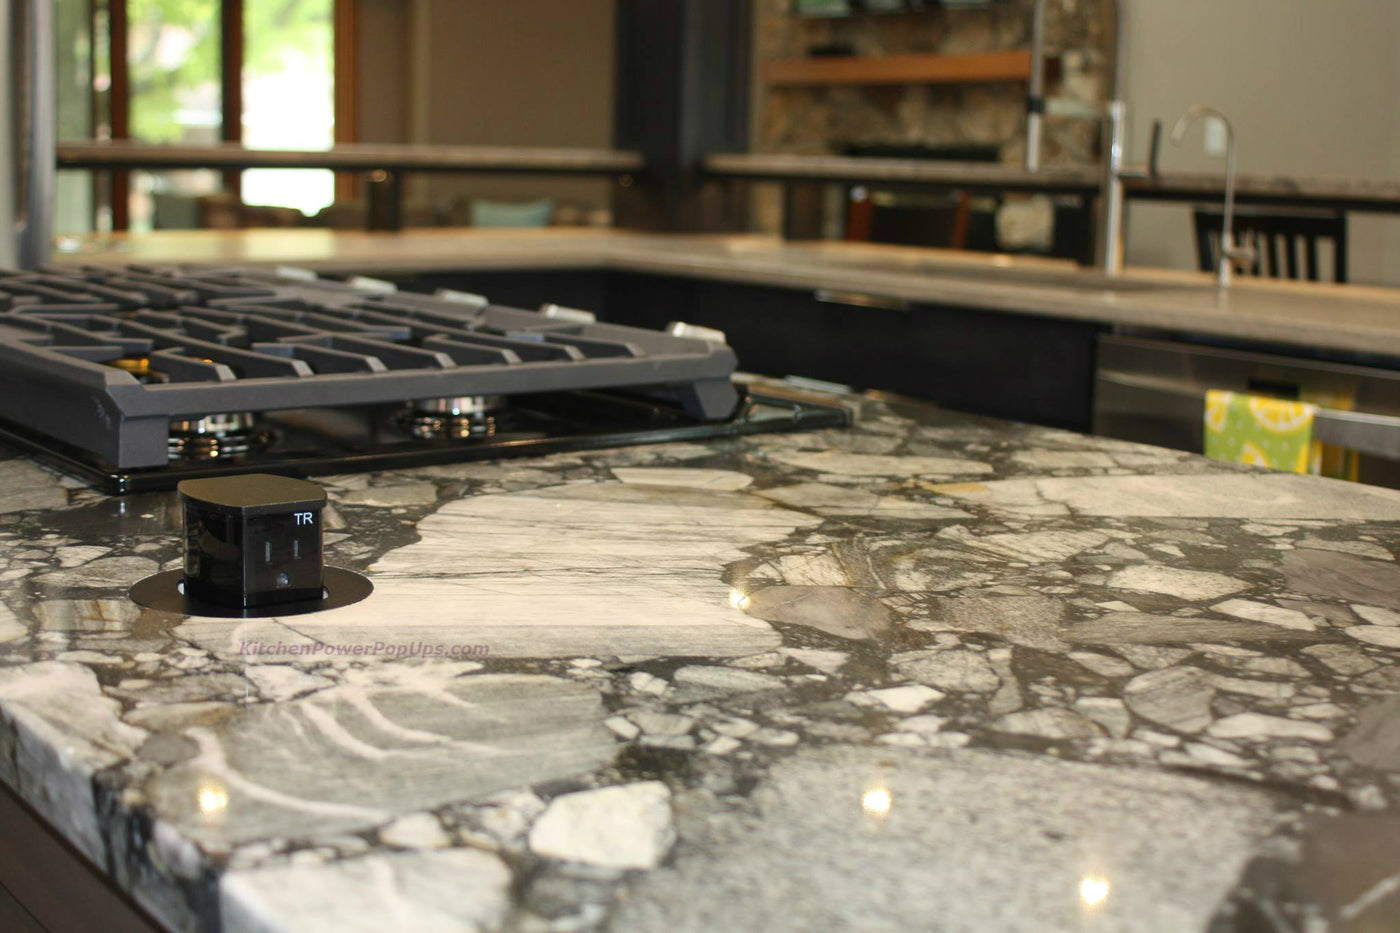 - 5 Reasons Why You May Need A Pop-Up Outlet In A Kitchen Counter